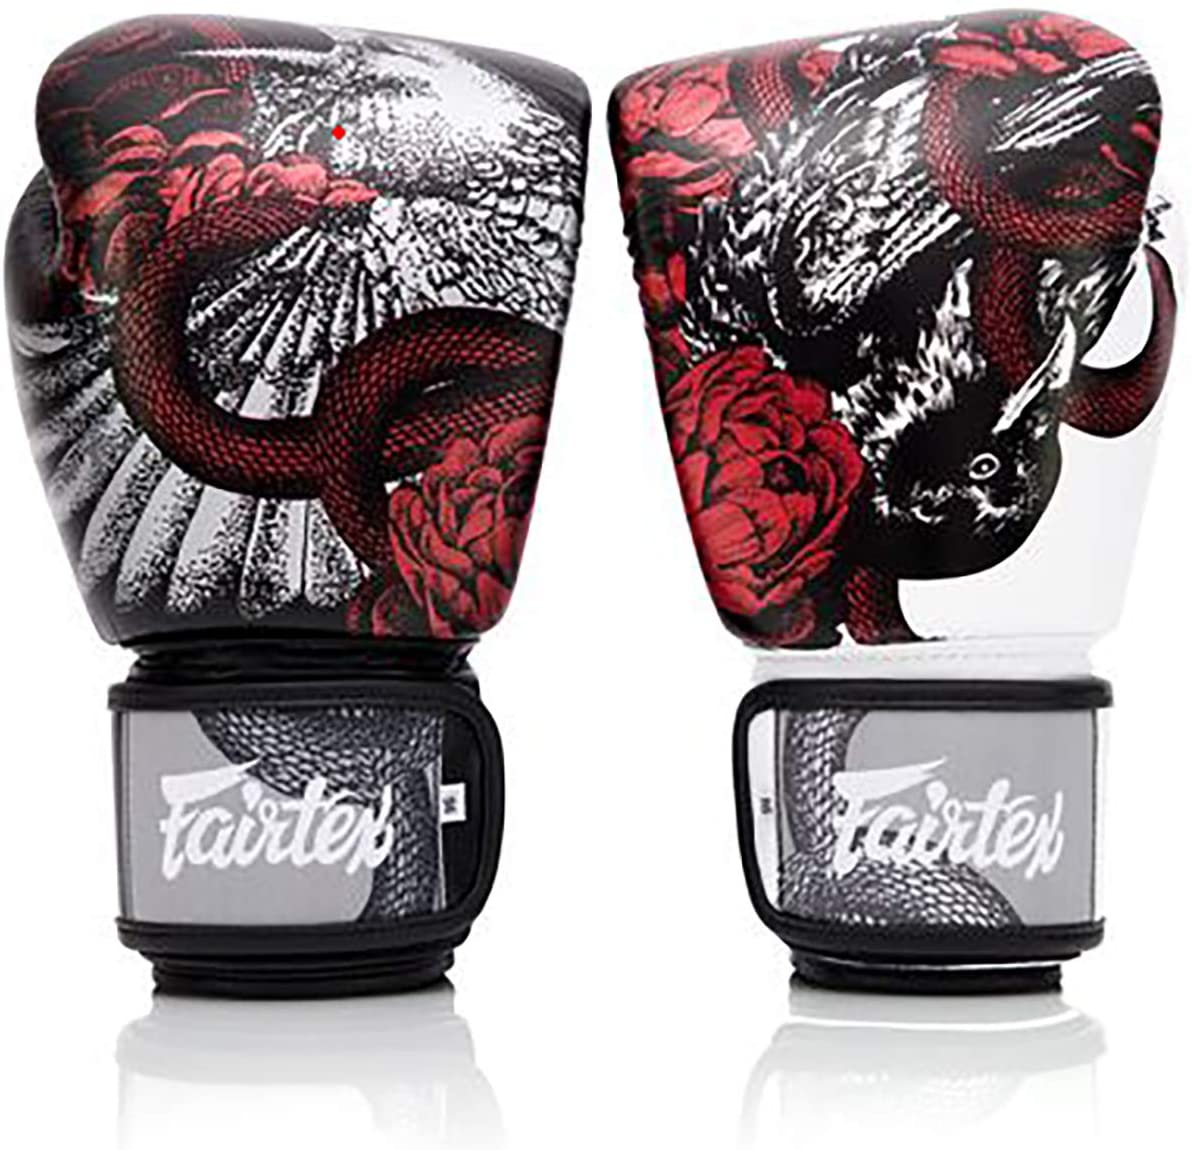 Buy Fairtex Products Online in Qatar at Best Prices